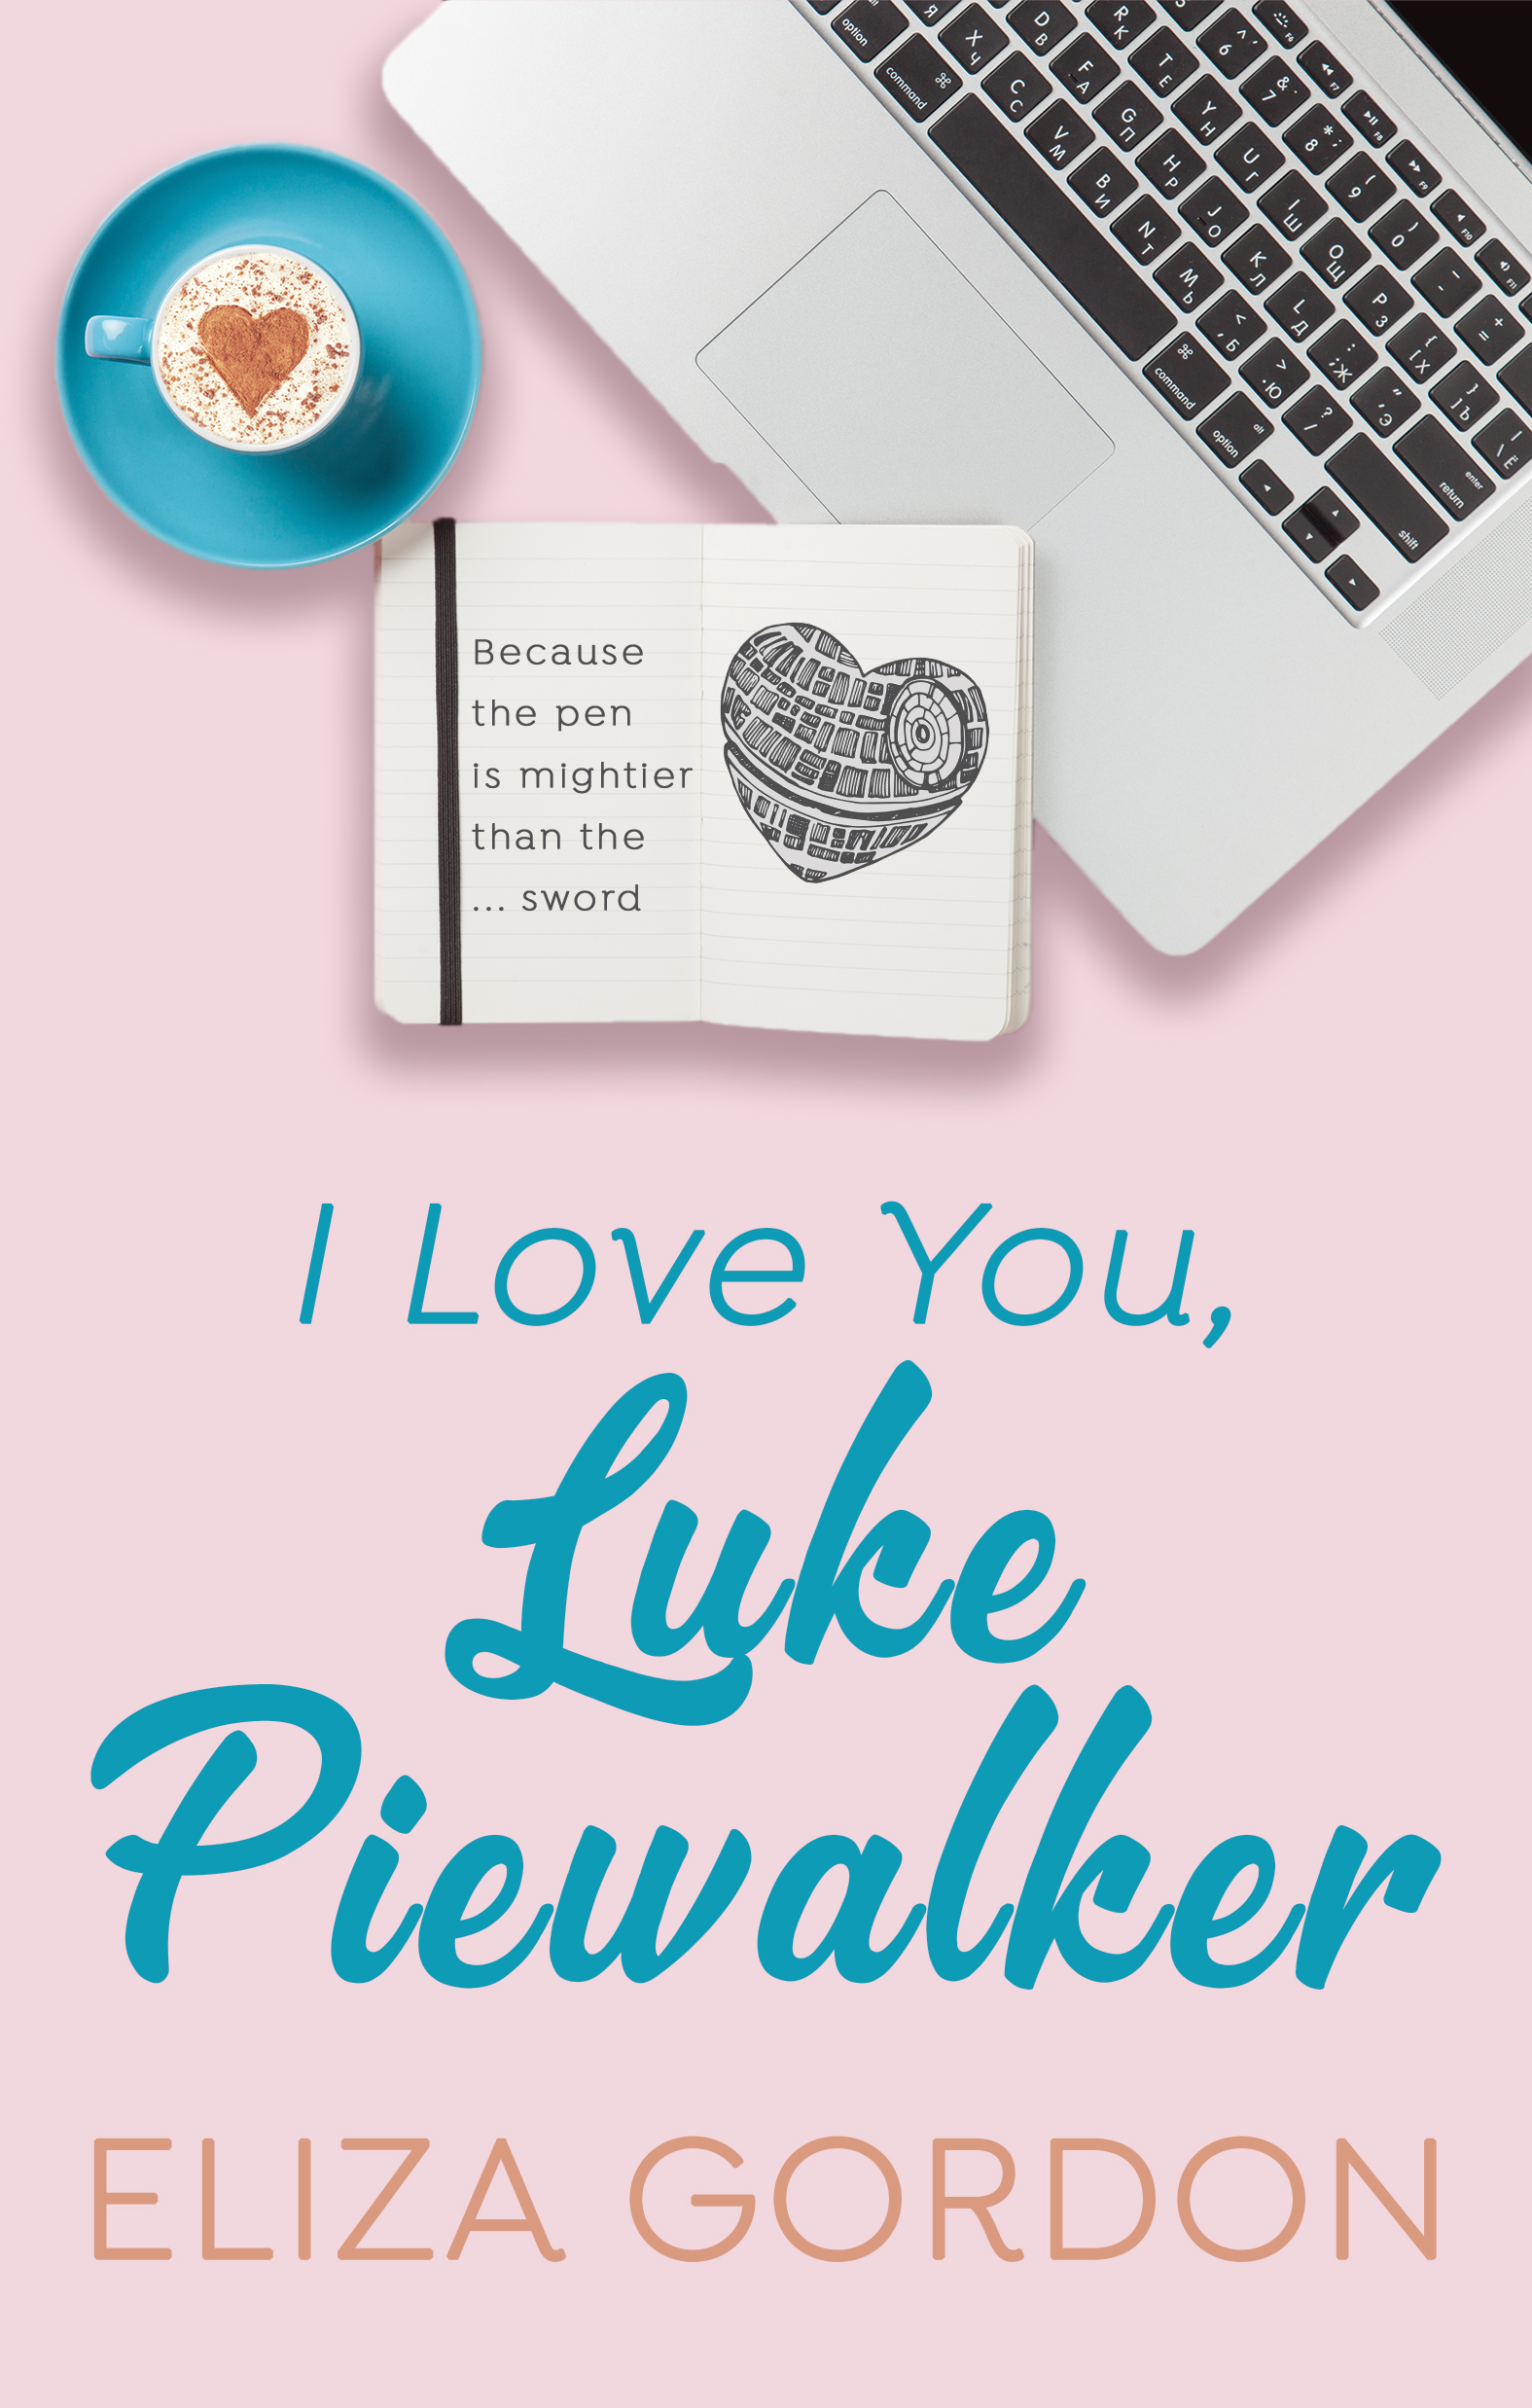 I Love You Luke Piewalker.jpg